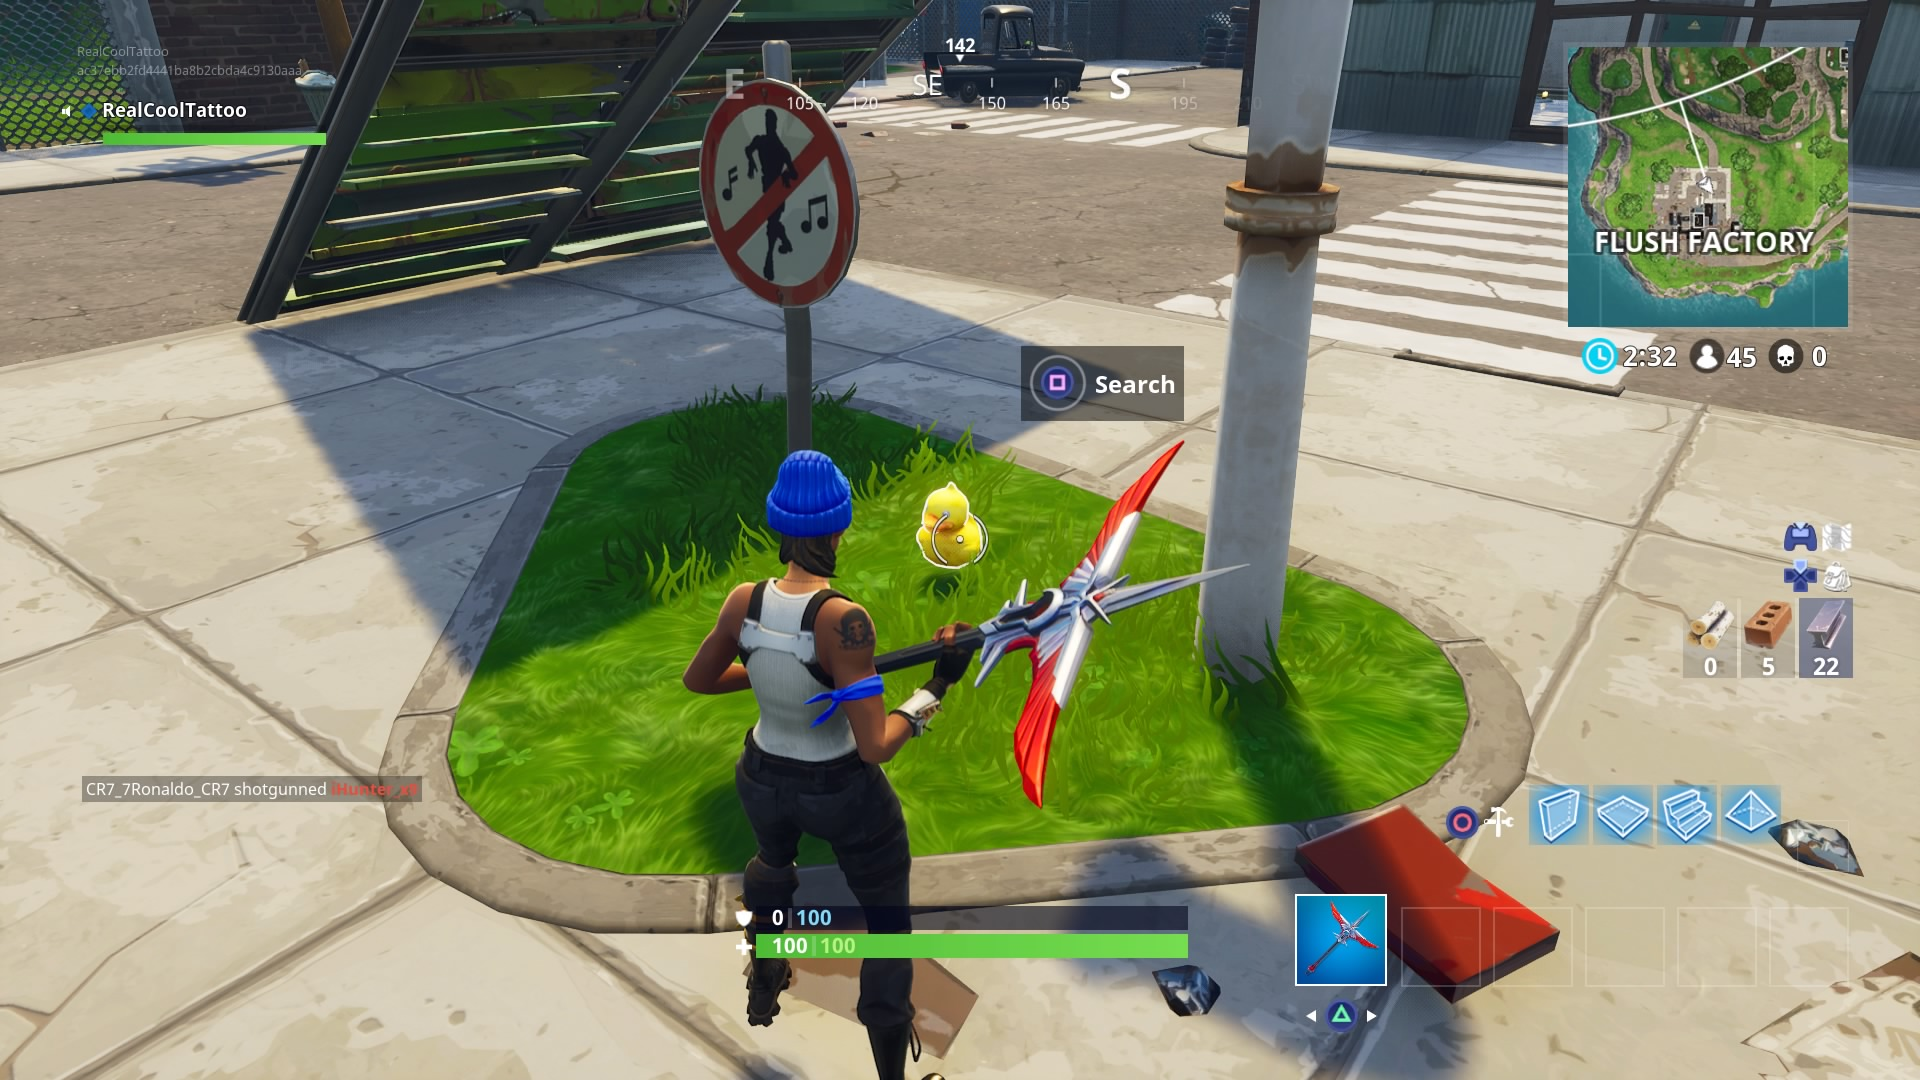 Fortnite Search Rubber Duckies How To Find 10 Quacking Ducks In Game Breaking News